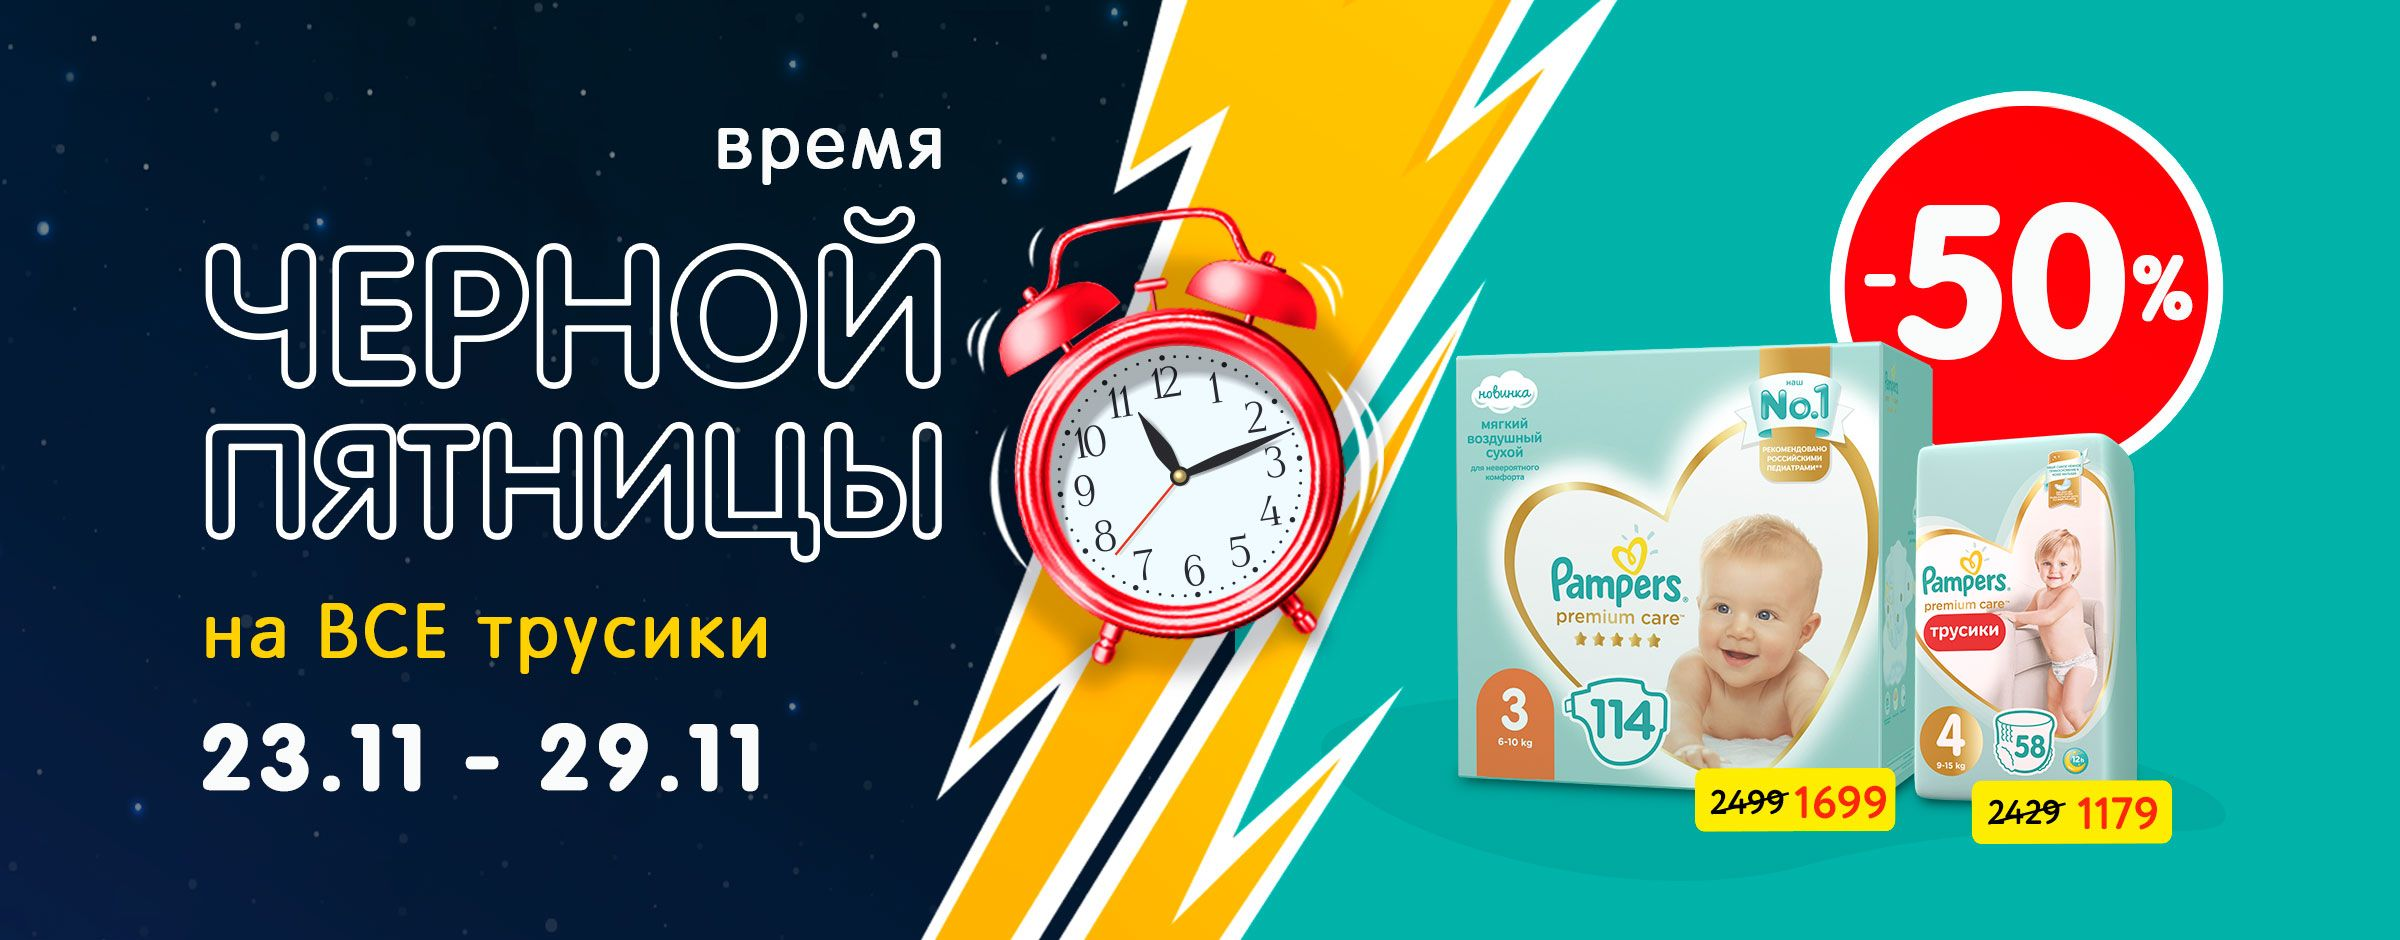 До 50% на Pampers Premium care статика